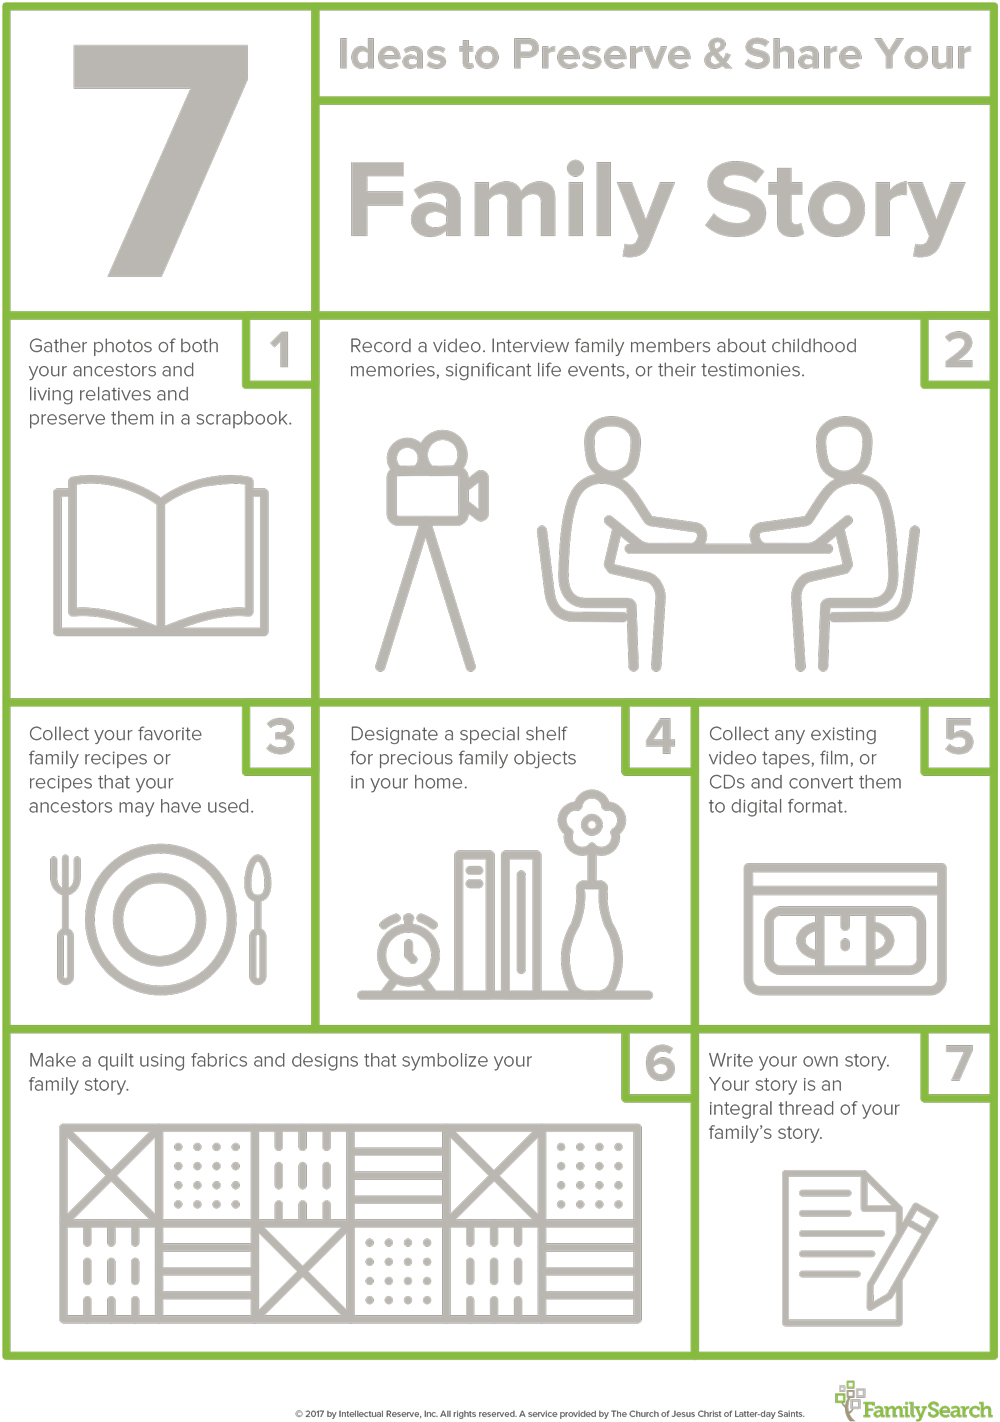 Try these 7 simple ways to preserve your family story.